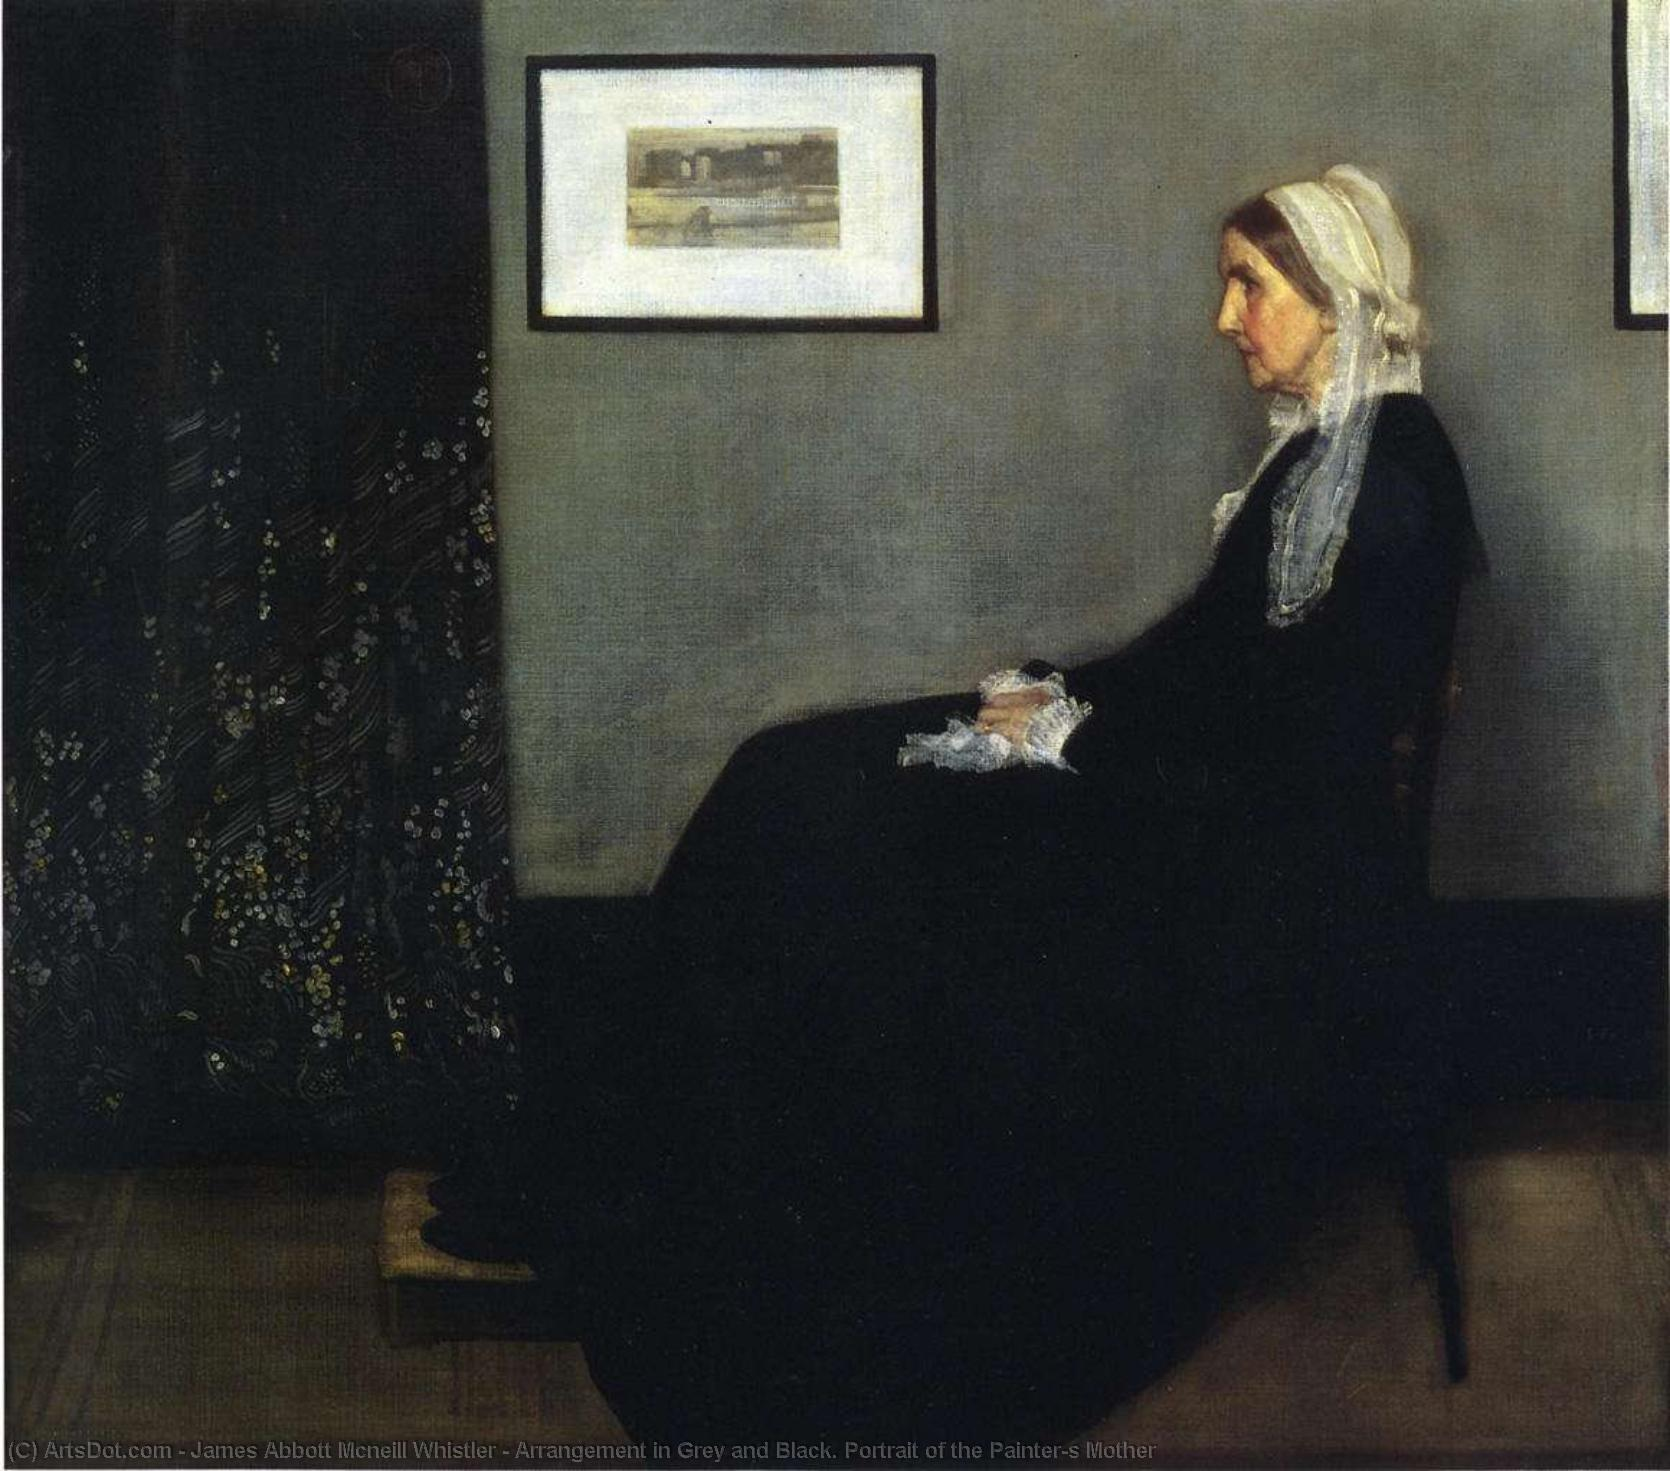 WikiOO.org - Enciclopédia das Belas Artes - Pintura, Arte por James Abbott Mcneill Whistler - Arrangement in Grey and Black. Portrait of the Painter's Mother